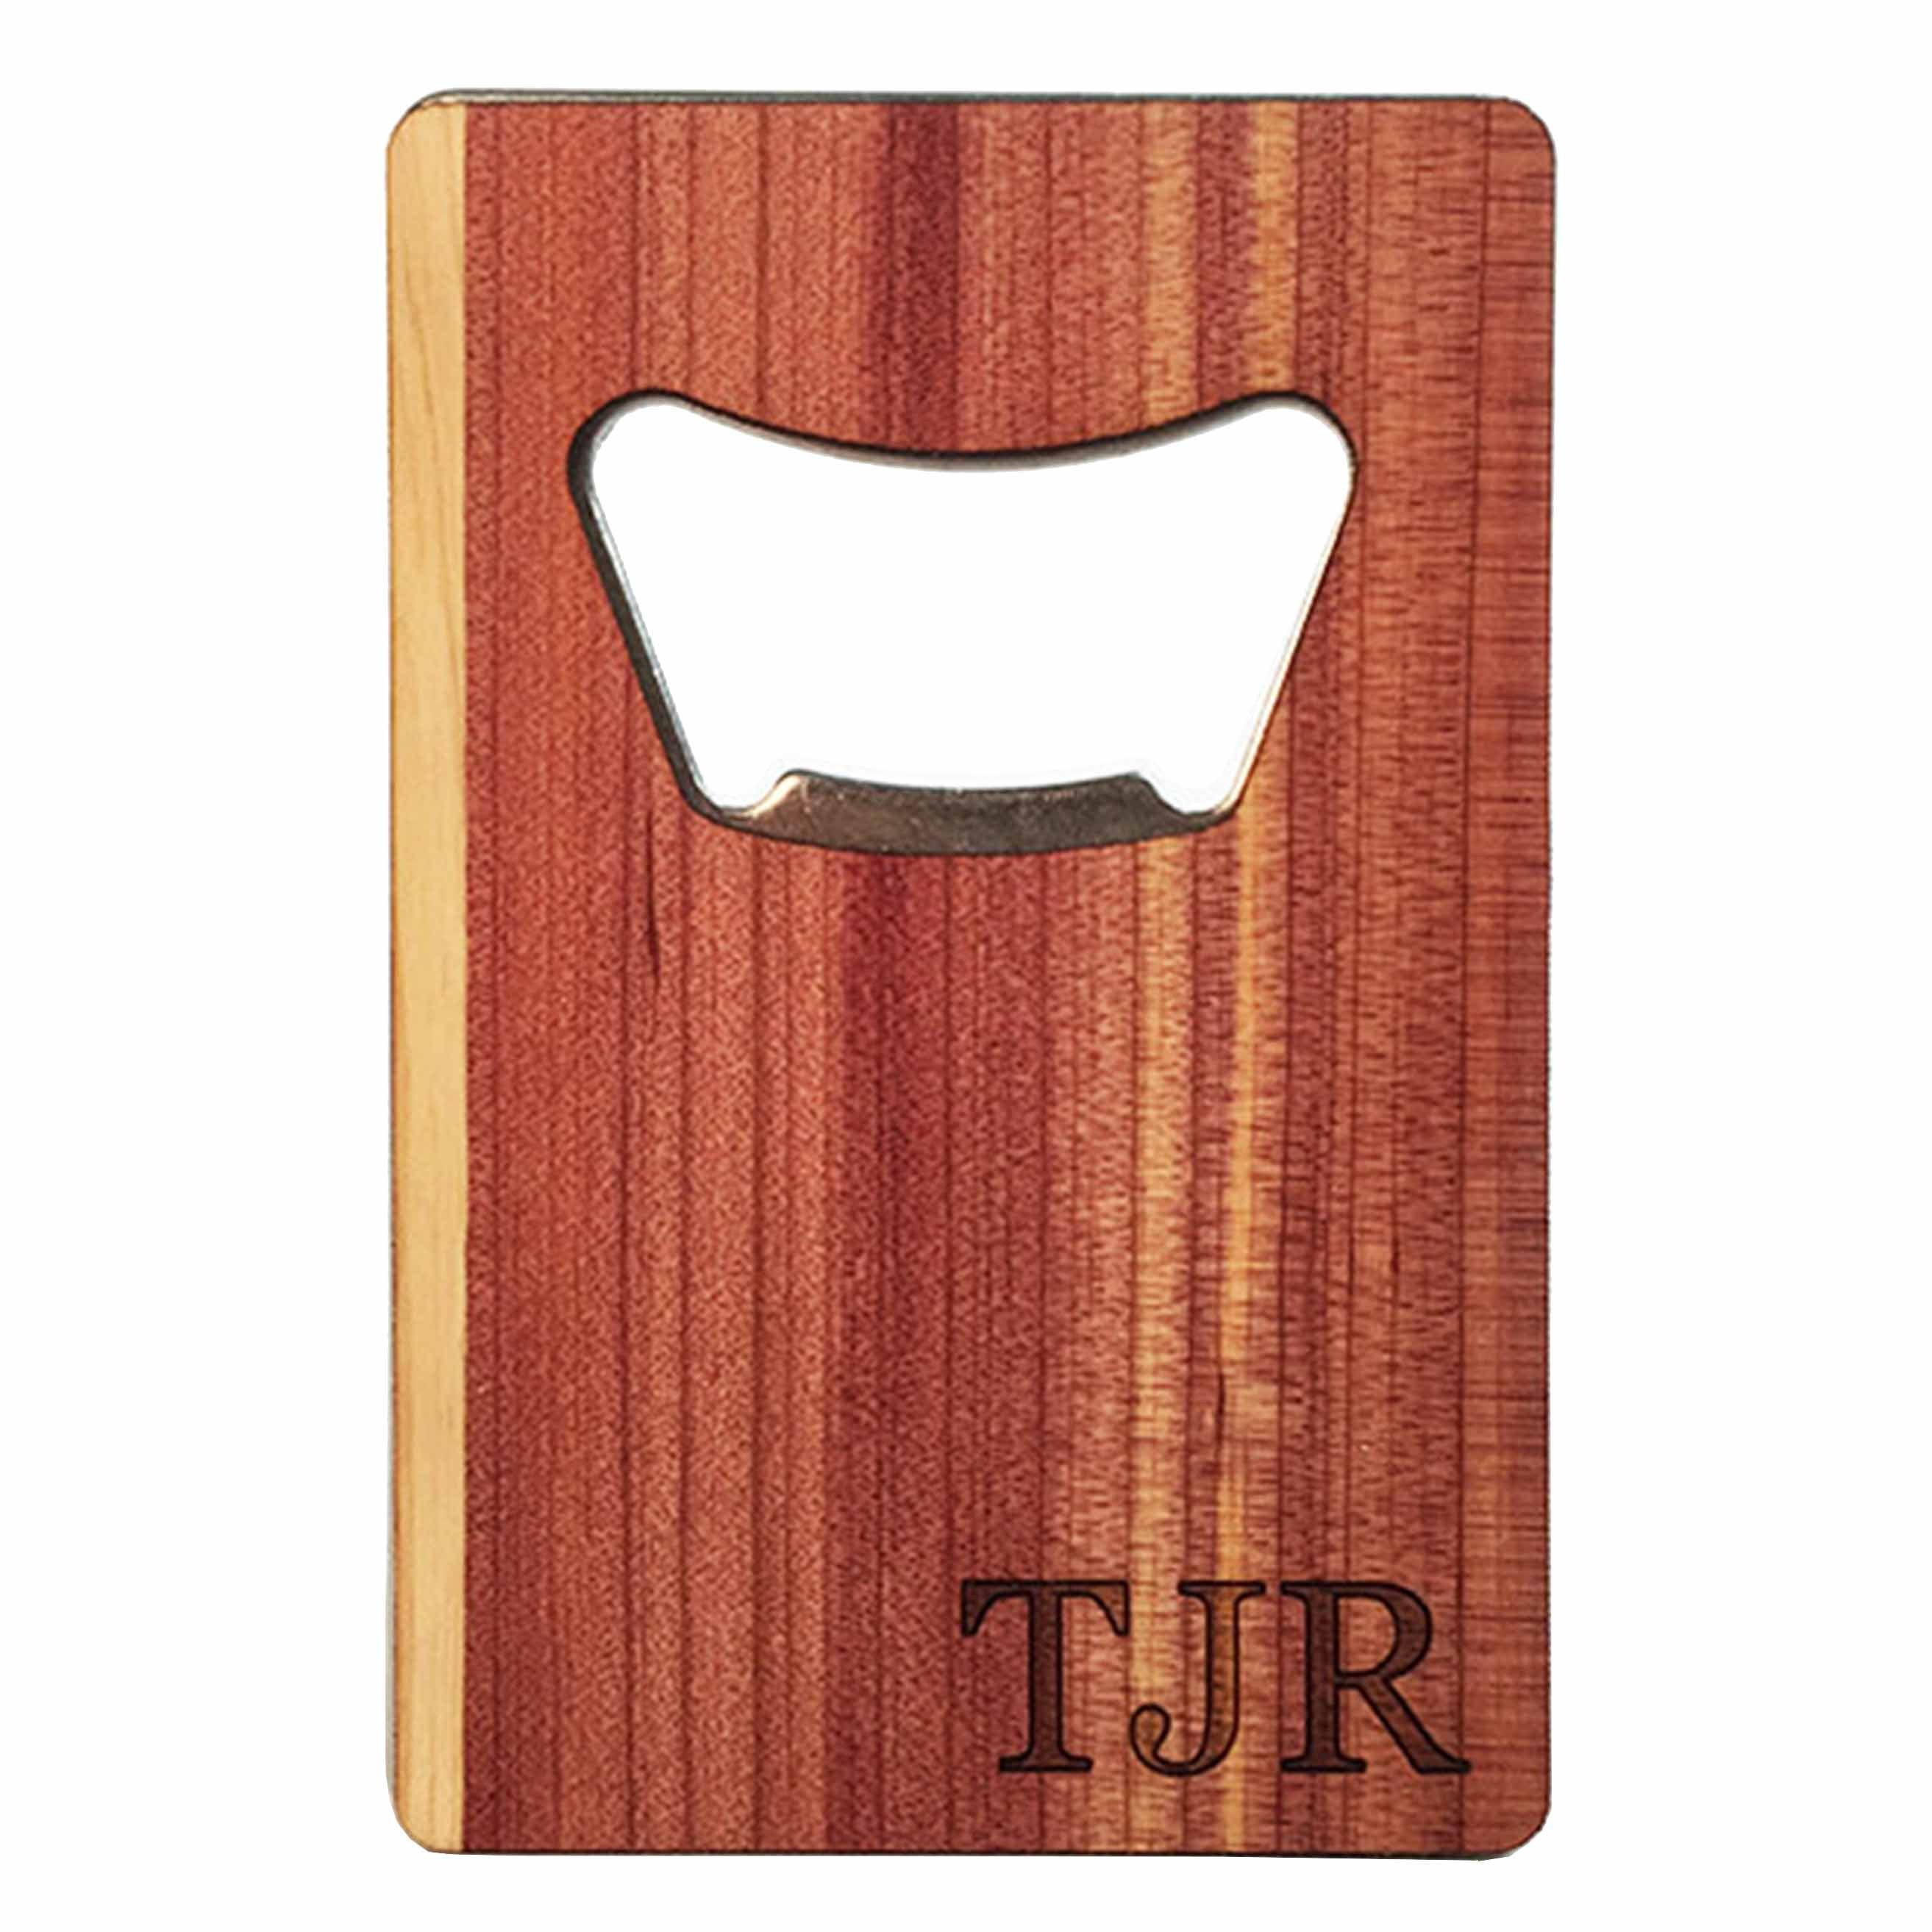 Real wood credit card bottle opener woodchuck usa Cedar credit